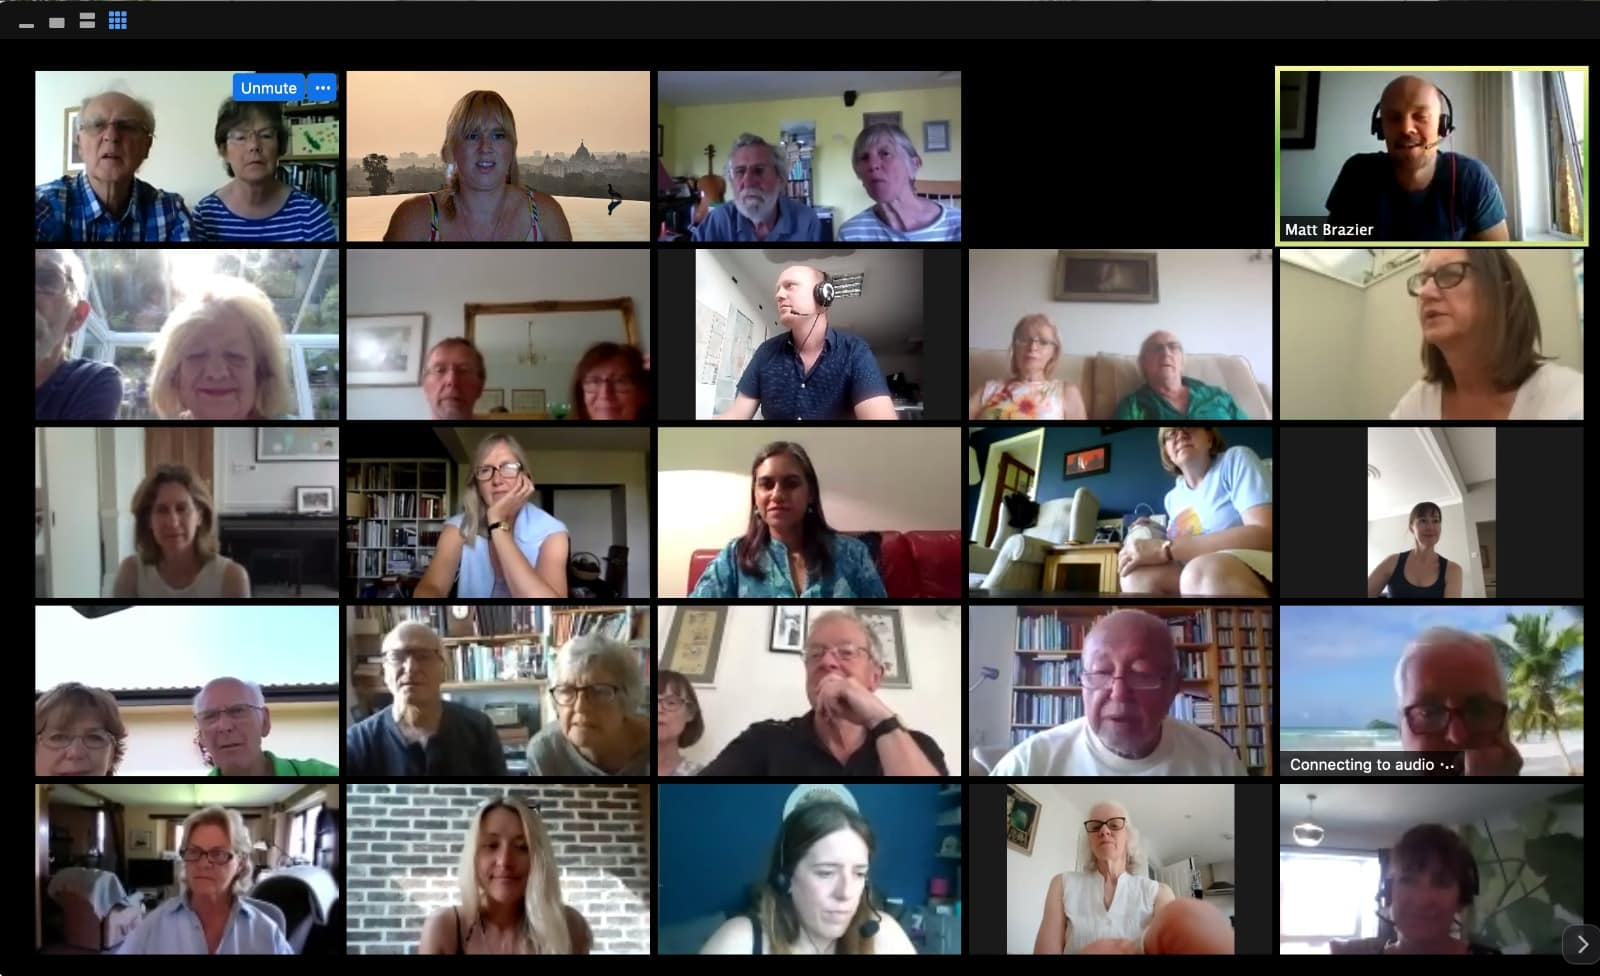 ETG travel community during a virtual event on zoom